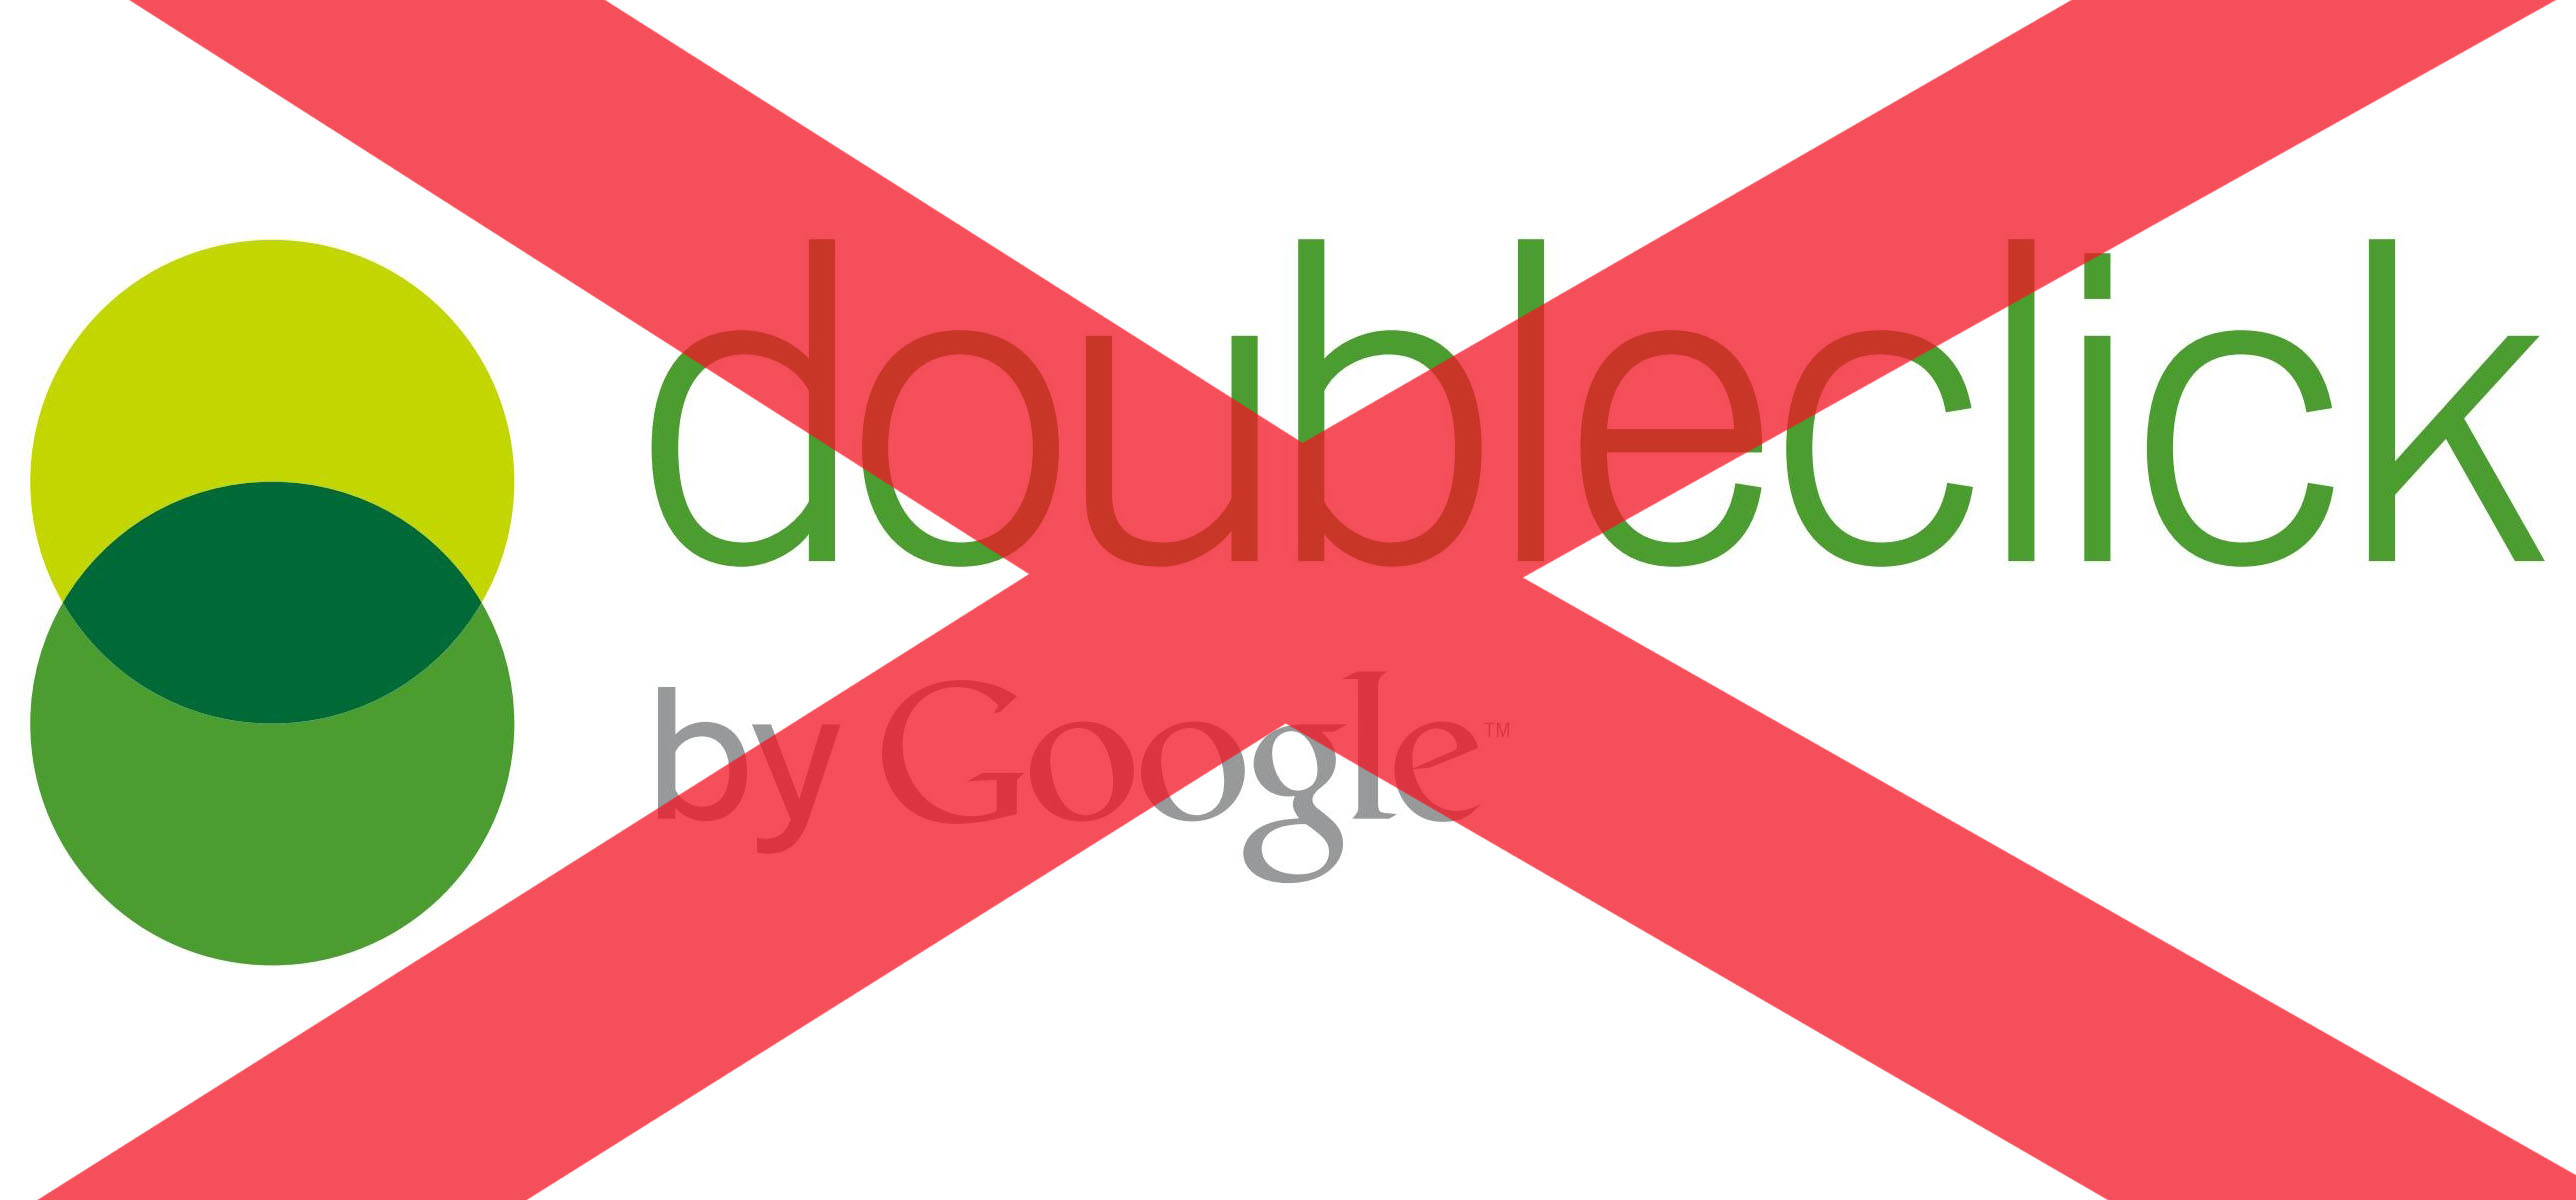 Google's DoubleClick Is Down, Removing Ads across the Web.